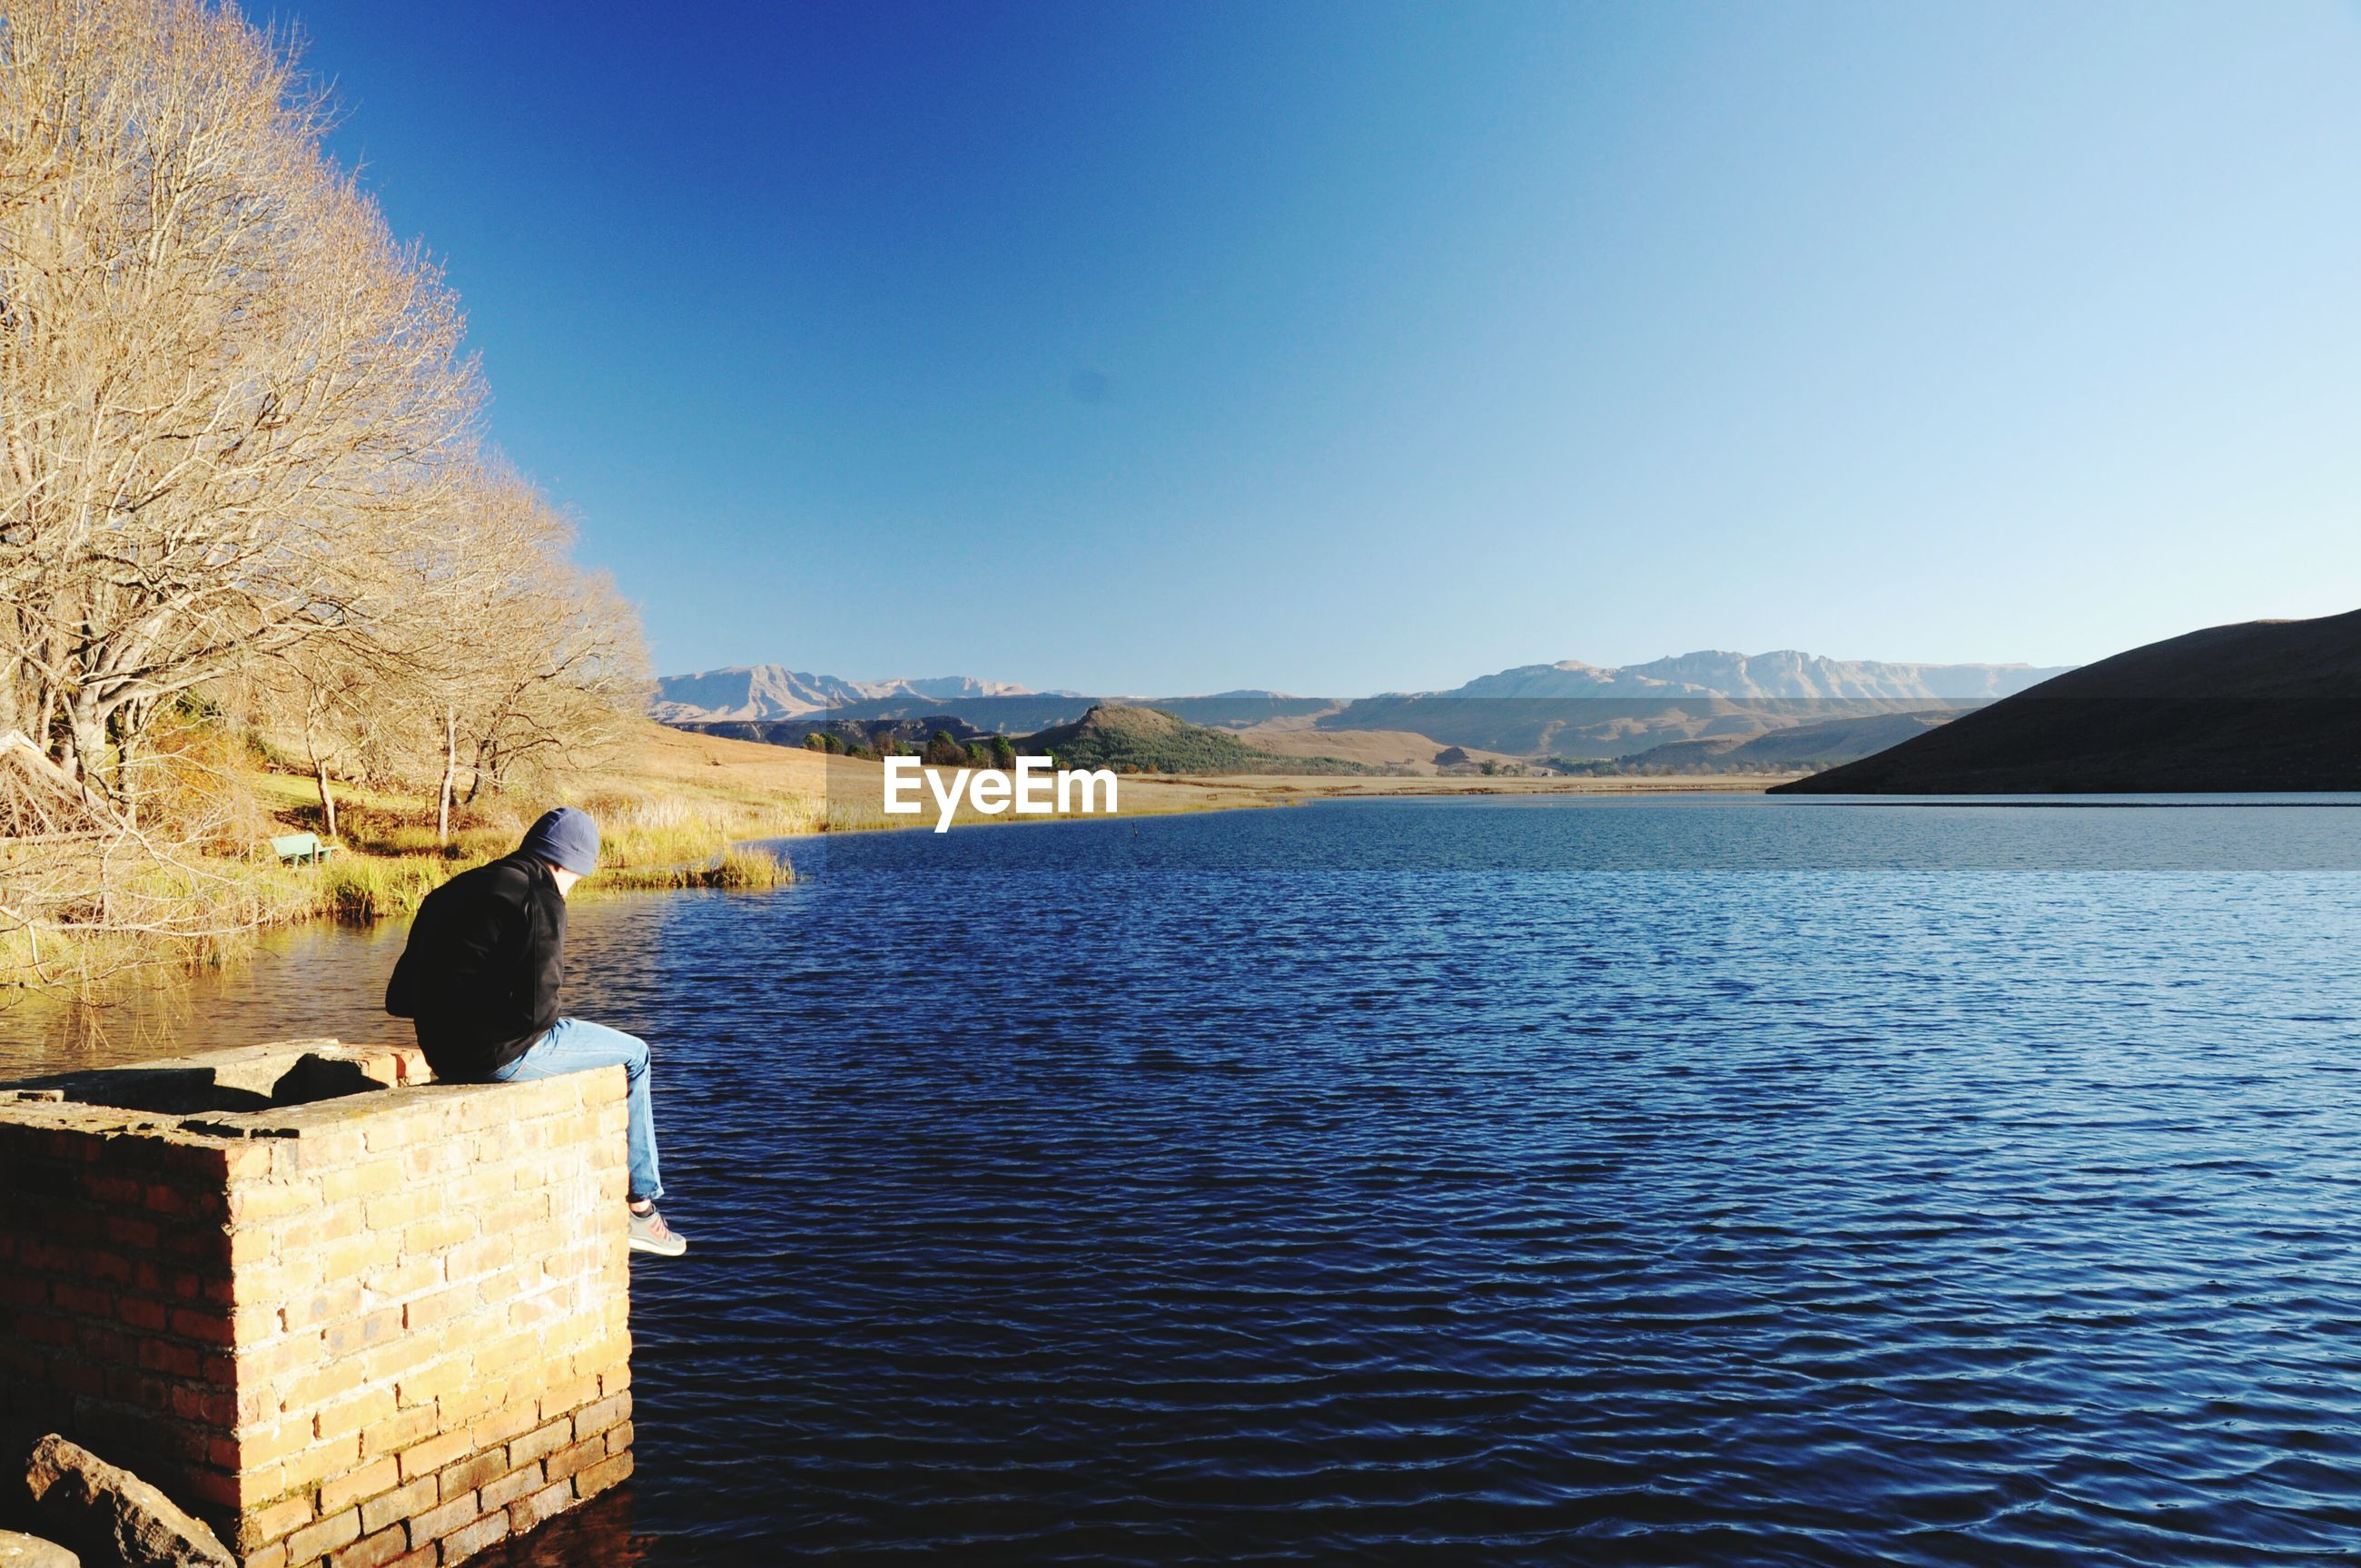 Man sitting on brick structure by lake against blue sky